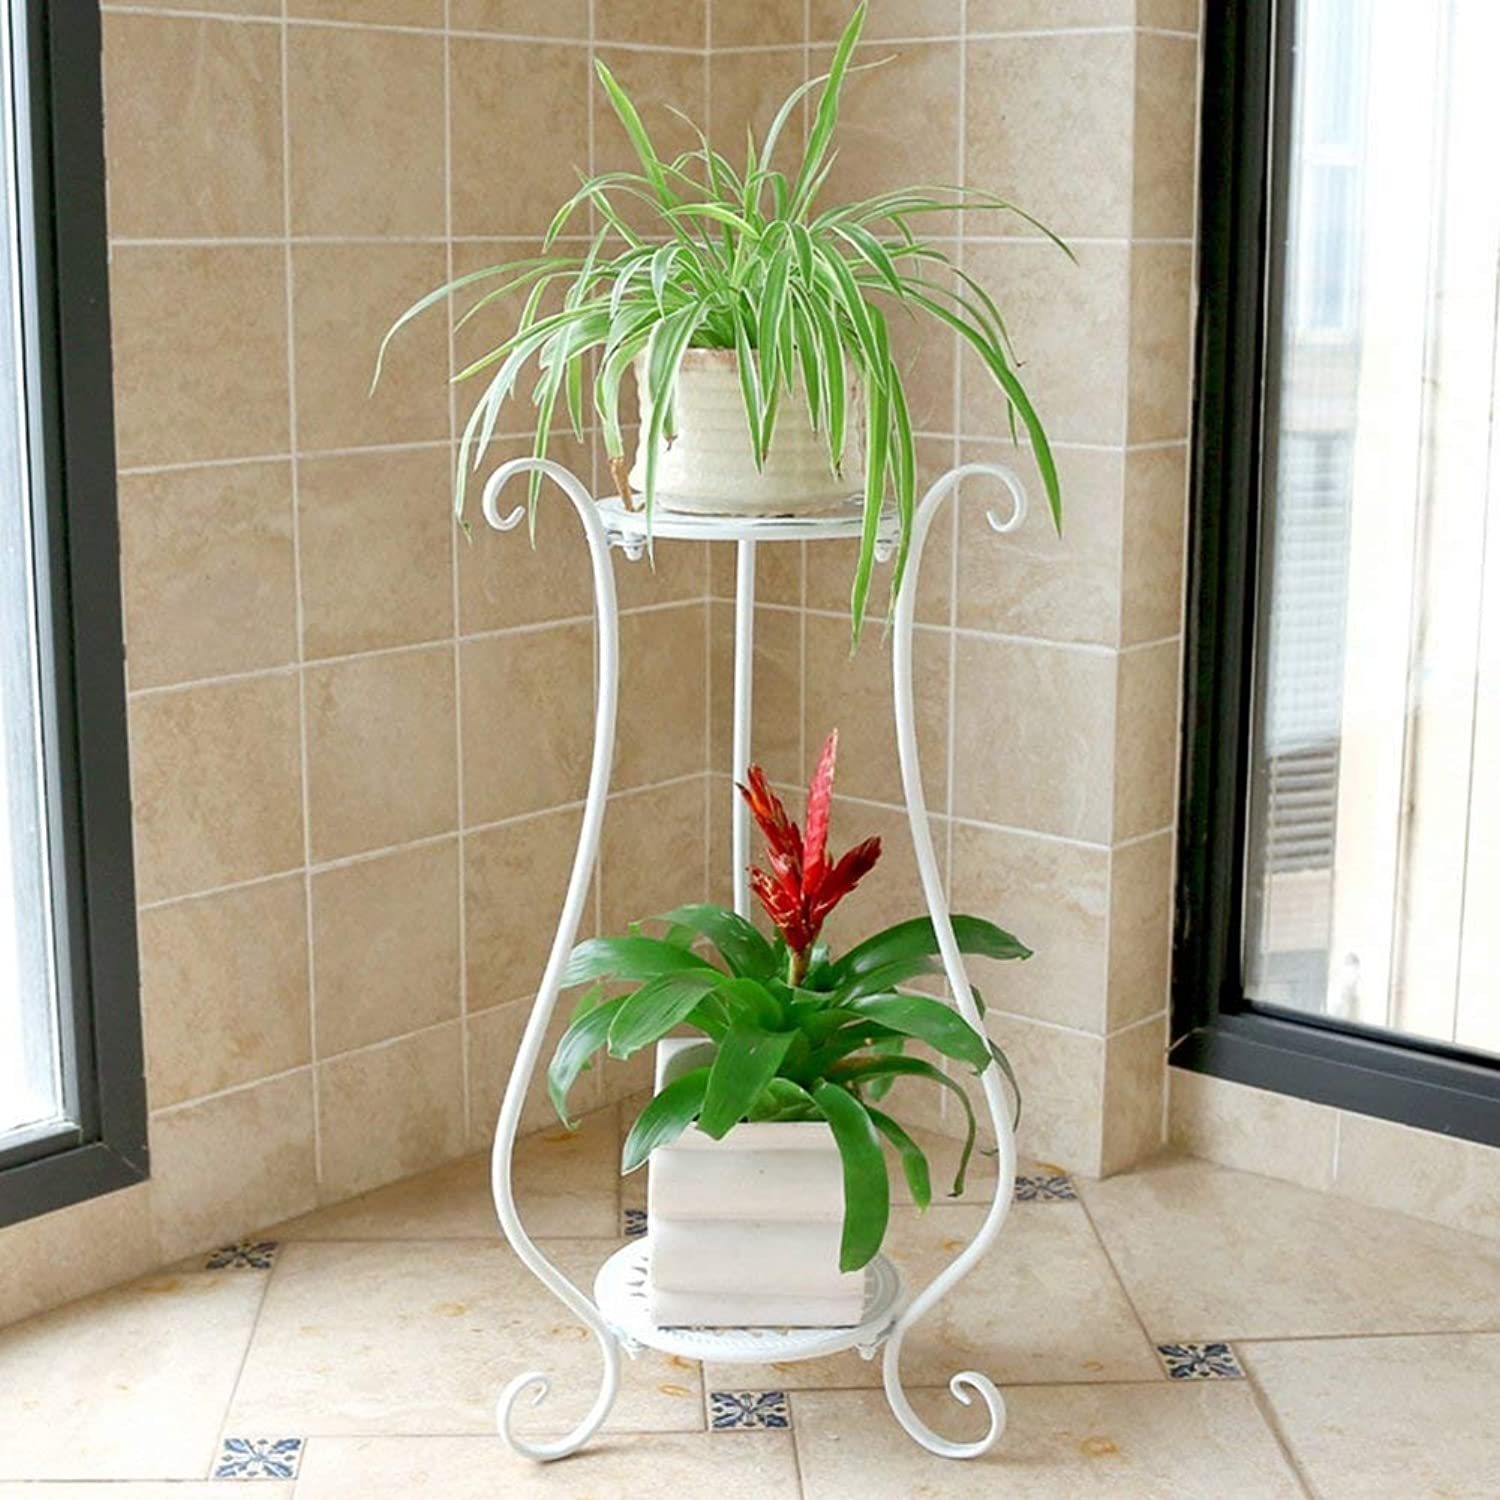 Gifts & Decor Plant Stand Shelf Home Gardening Multilayer Wrought Iron Plant Stand,Planter Rack